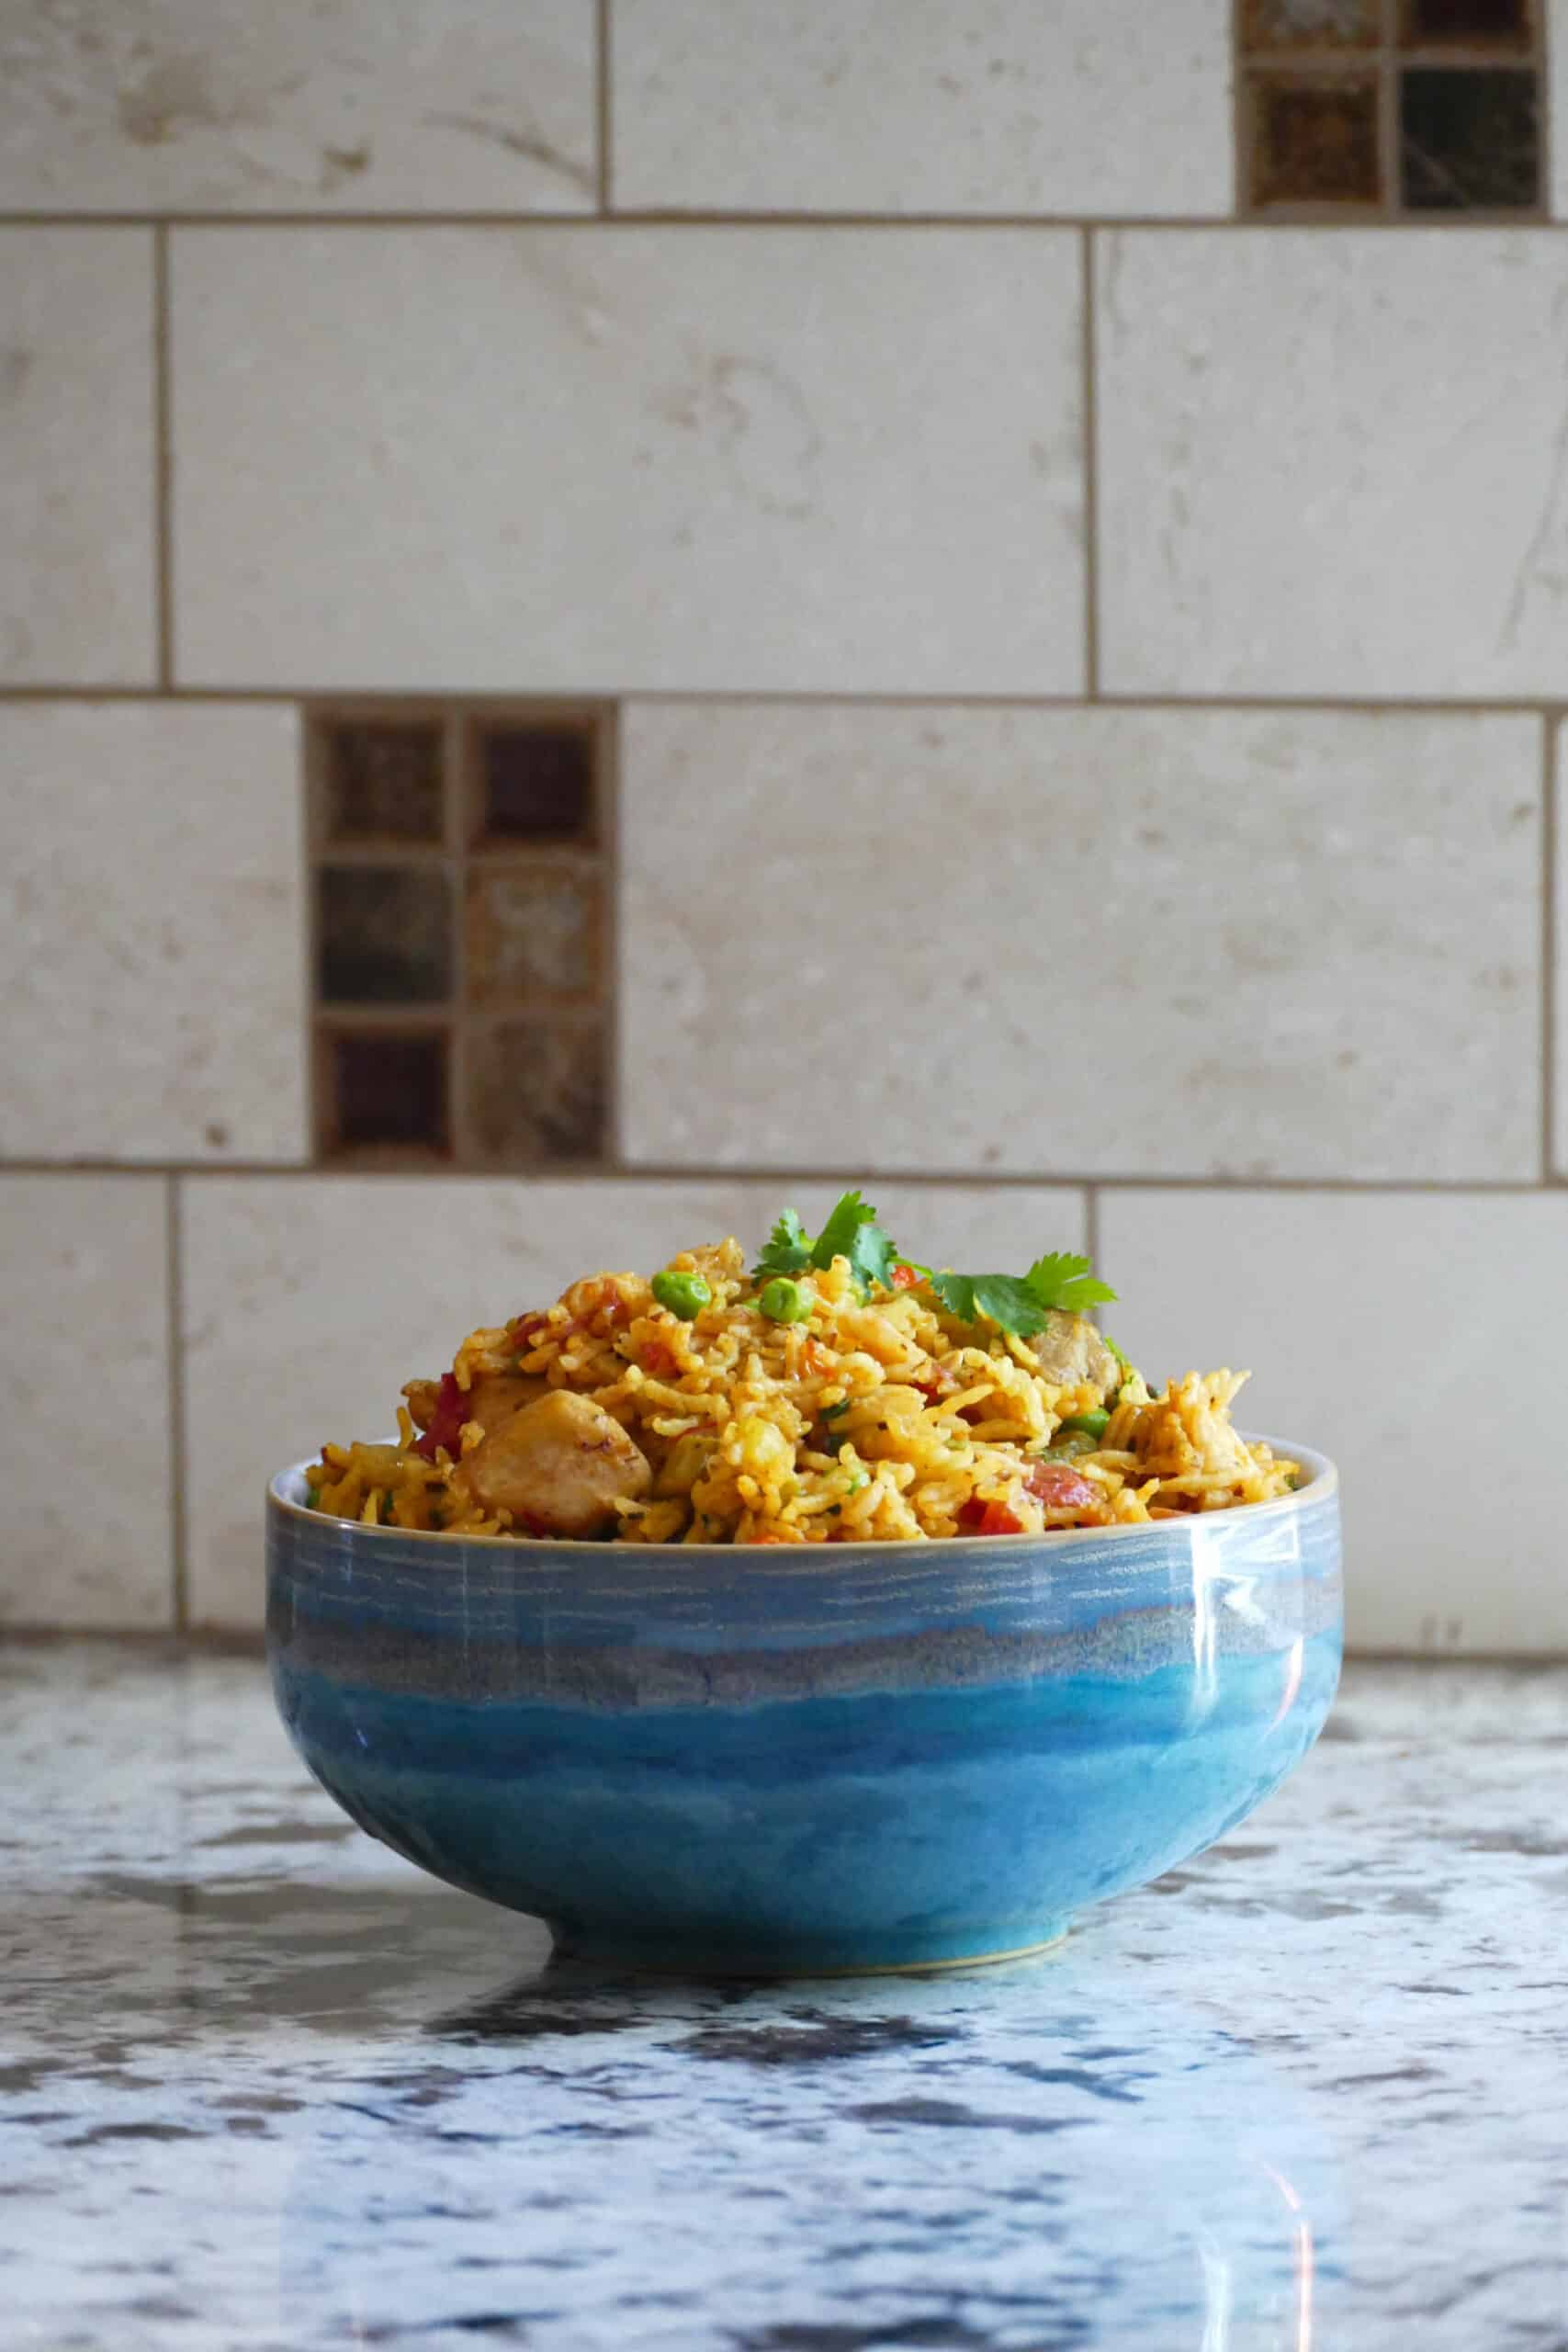 Blue bowl on counter with yellow rice, peas, chicken topped with cilantro